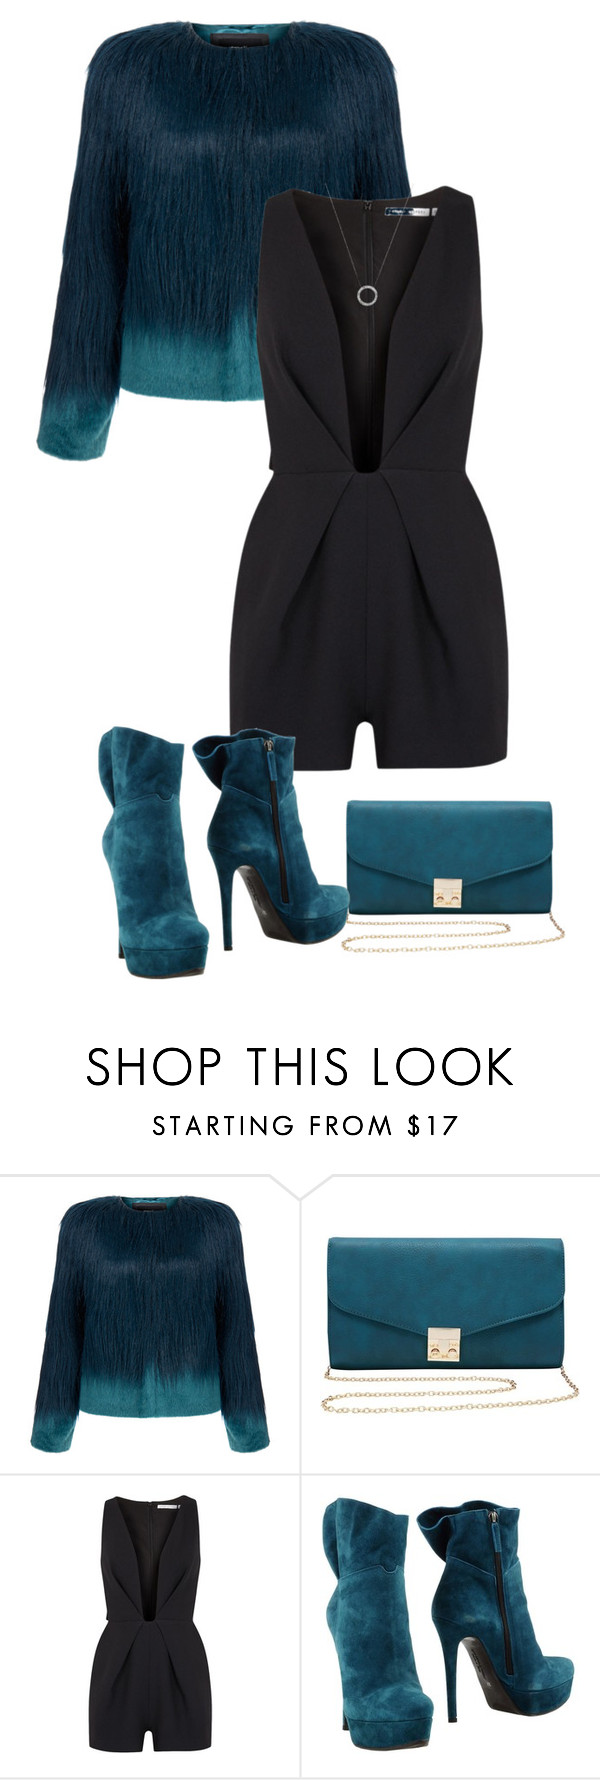 """""""DateNight"""" by kicsijahmeky ❤ liked on Polyvore featuring Unreal Fur, M&Co, Finders Keepers, Giancarlo Paoli, Michael Kors, michaelkors and fur"""